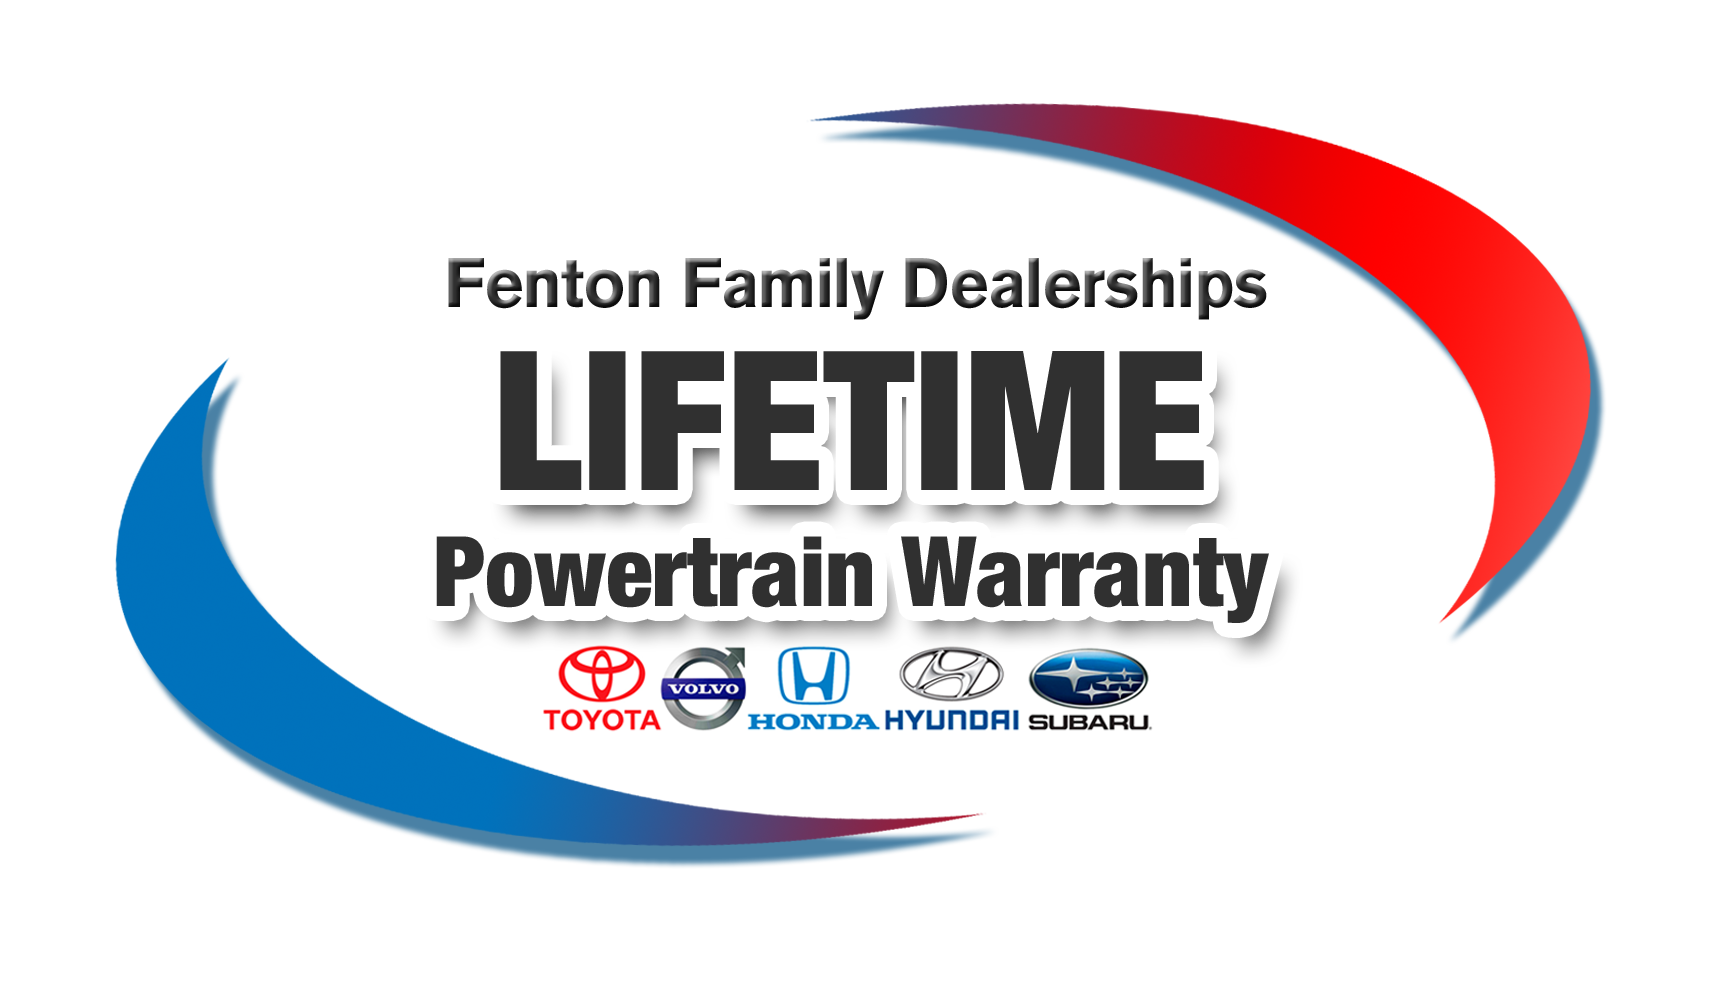 kms to warranties car india forum capture years up available honda scene warranty extended indian